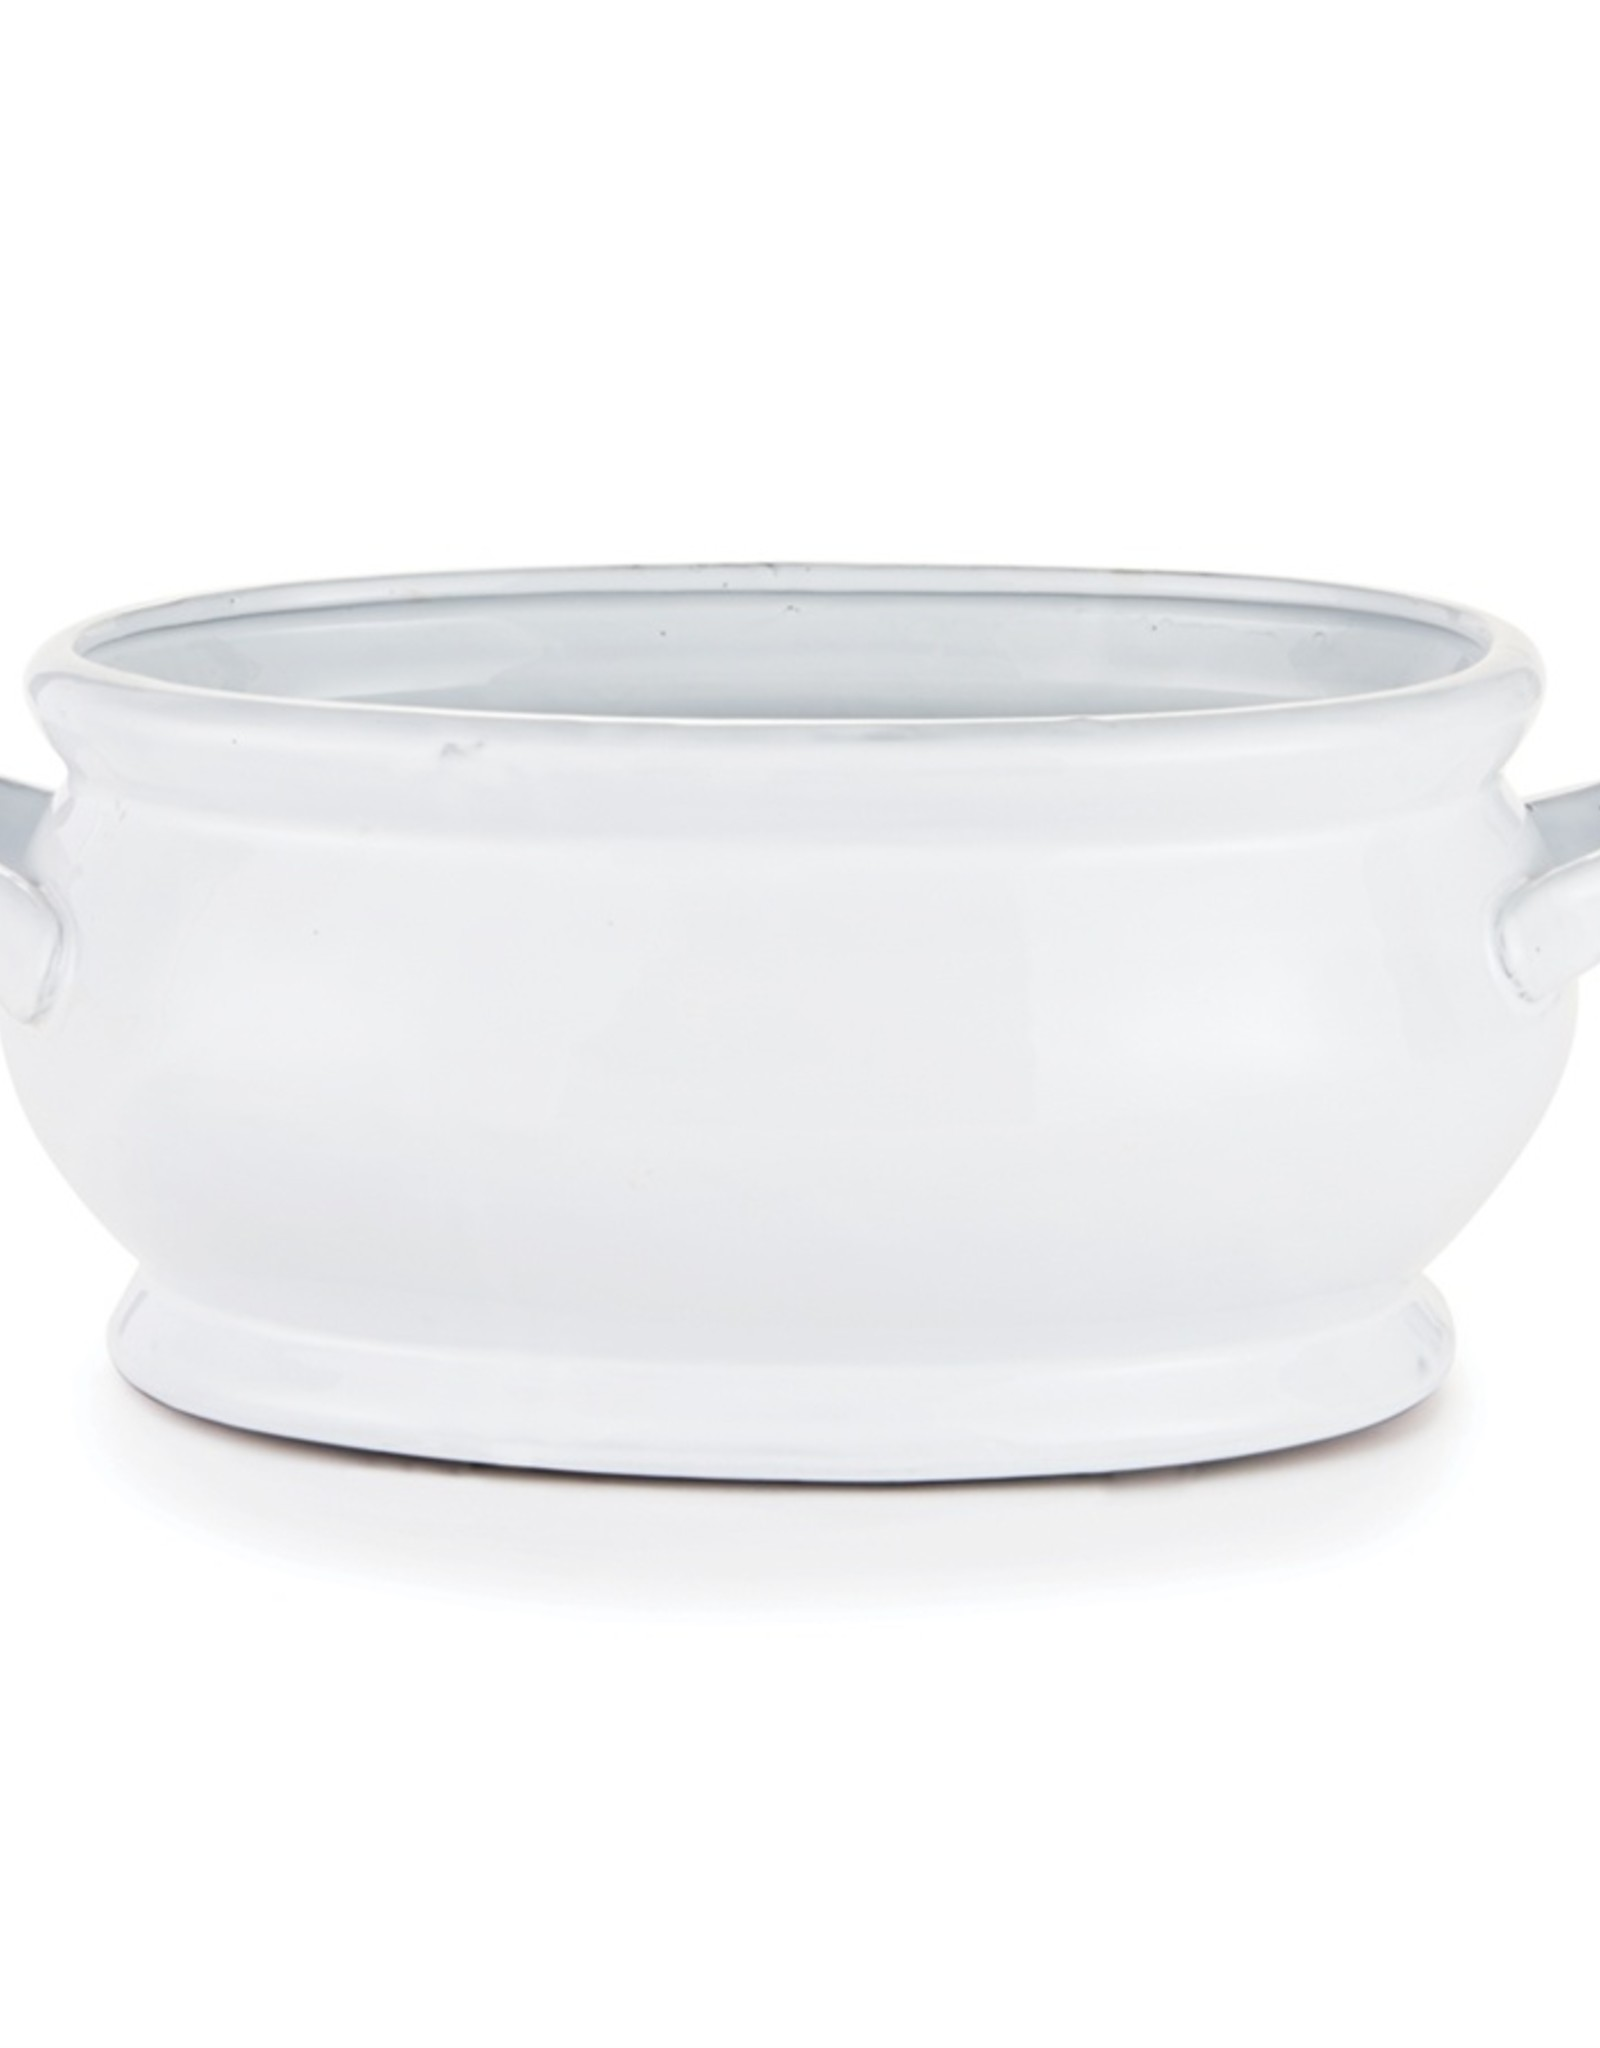 Napa Home and Garden Bradford Oval Cachepot